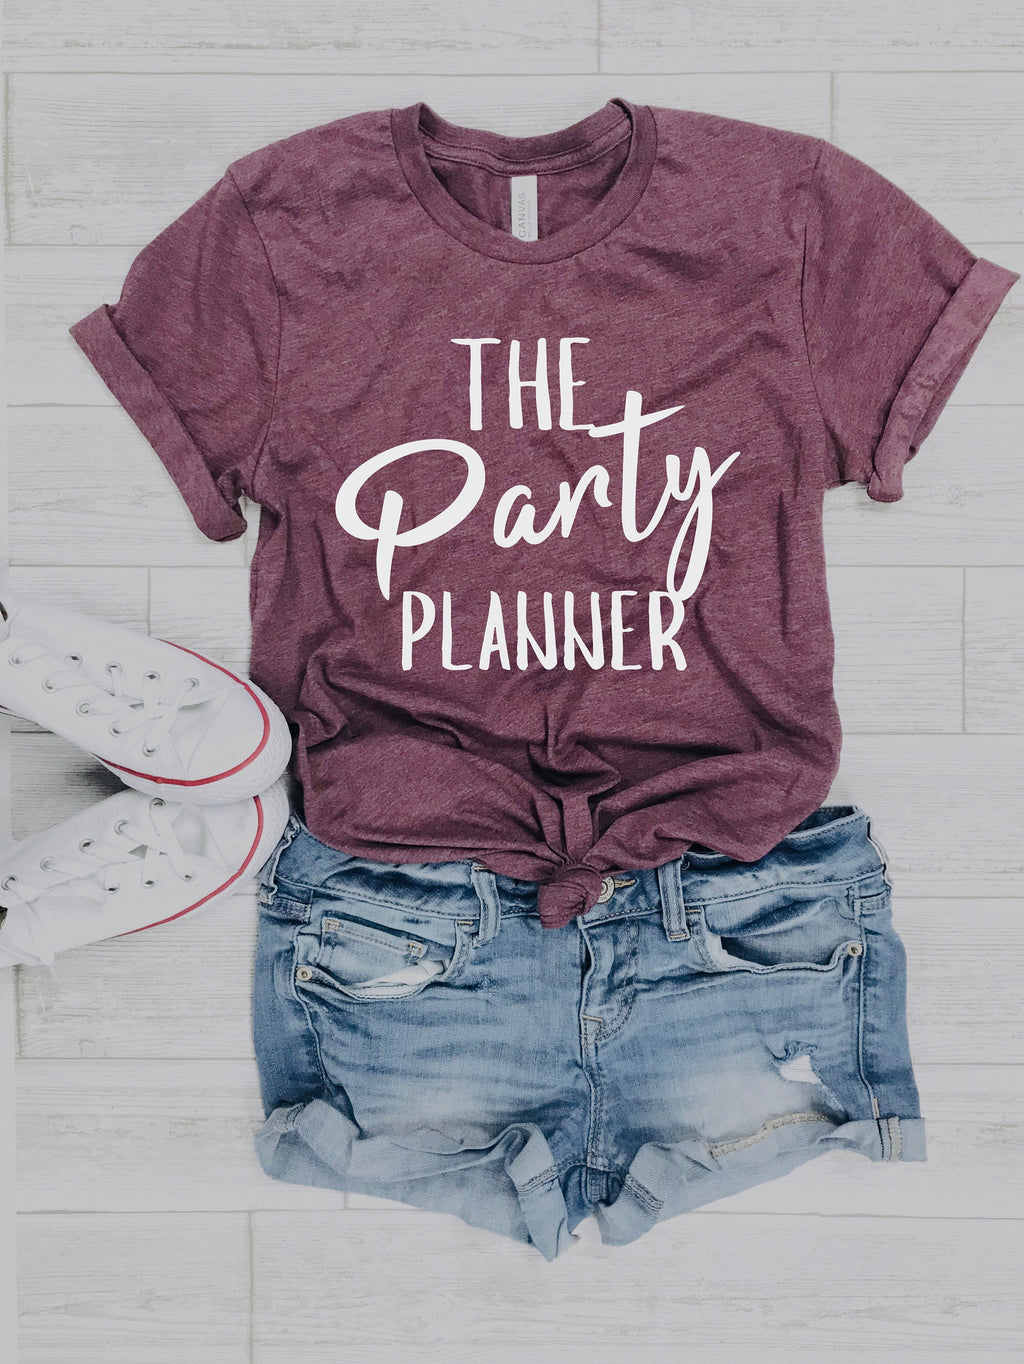 party planner shirt, party planner gift, wedding planning shirt, event coordinator shirt, event coordinator gift, birthday party shirt